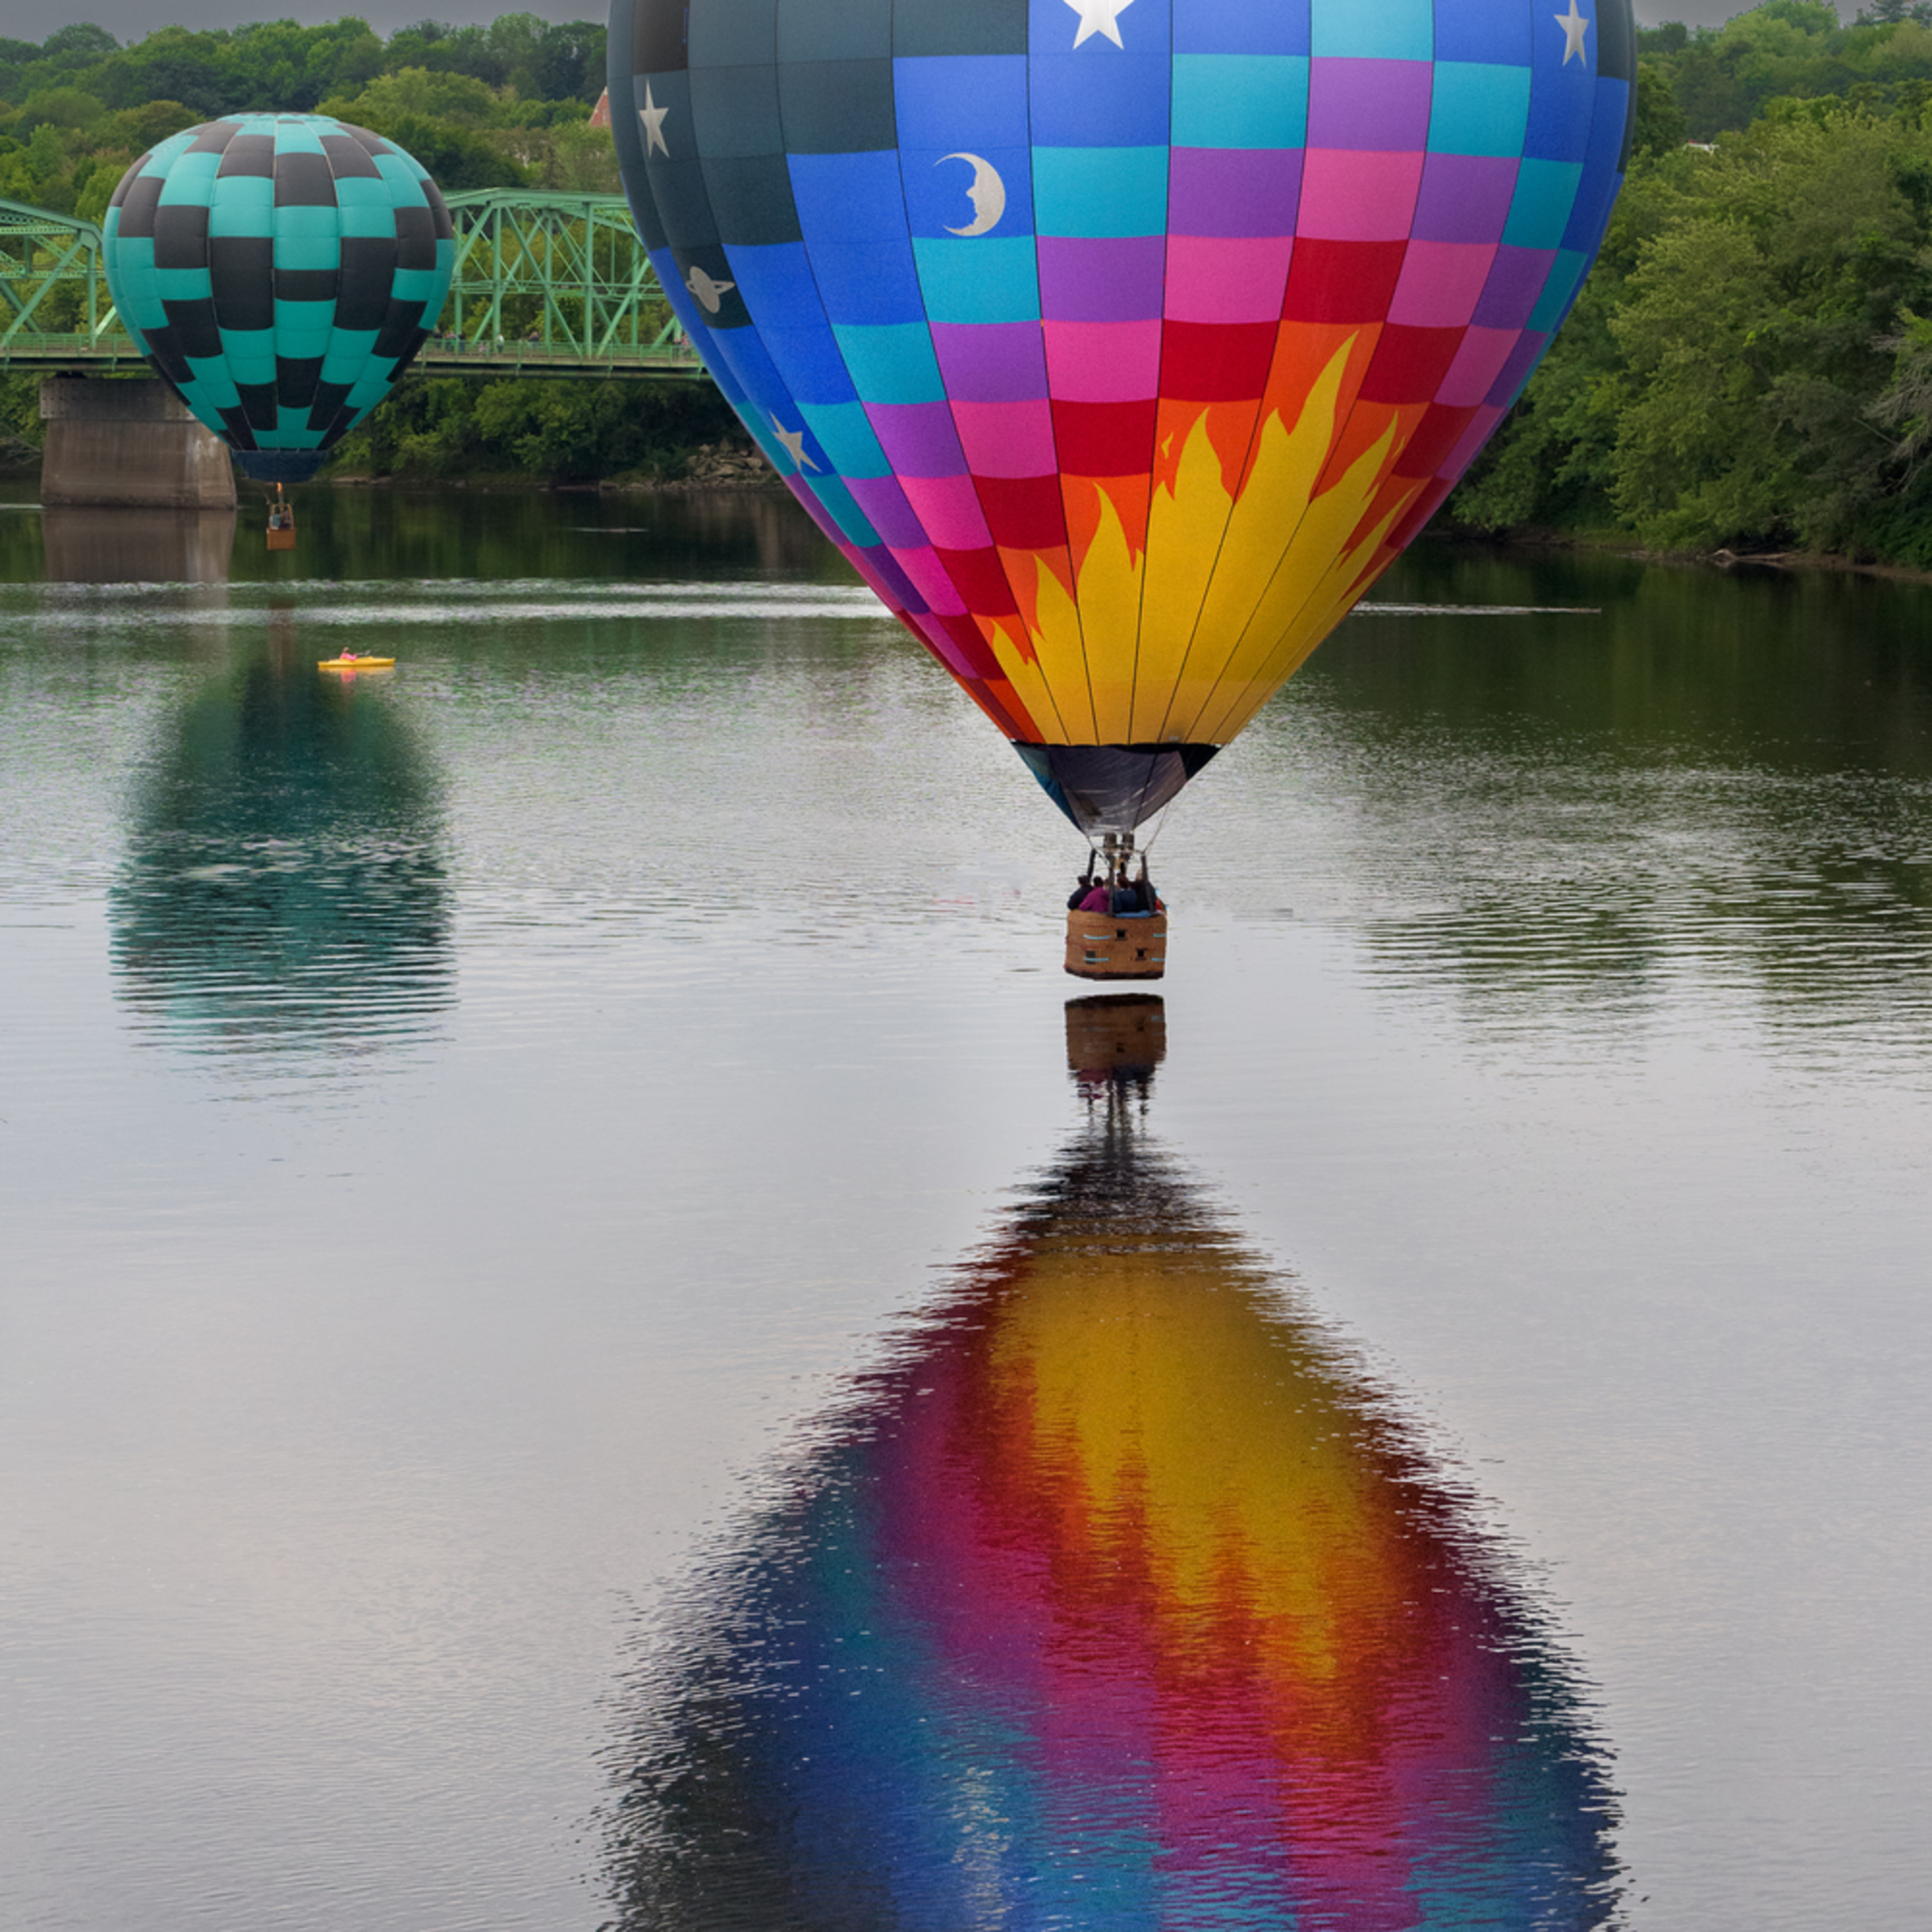 Balloon reflections gg3mhl